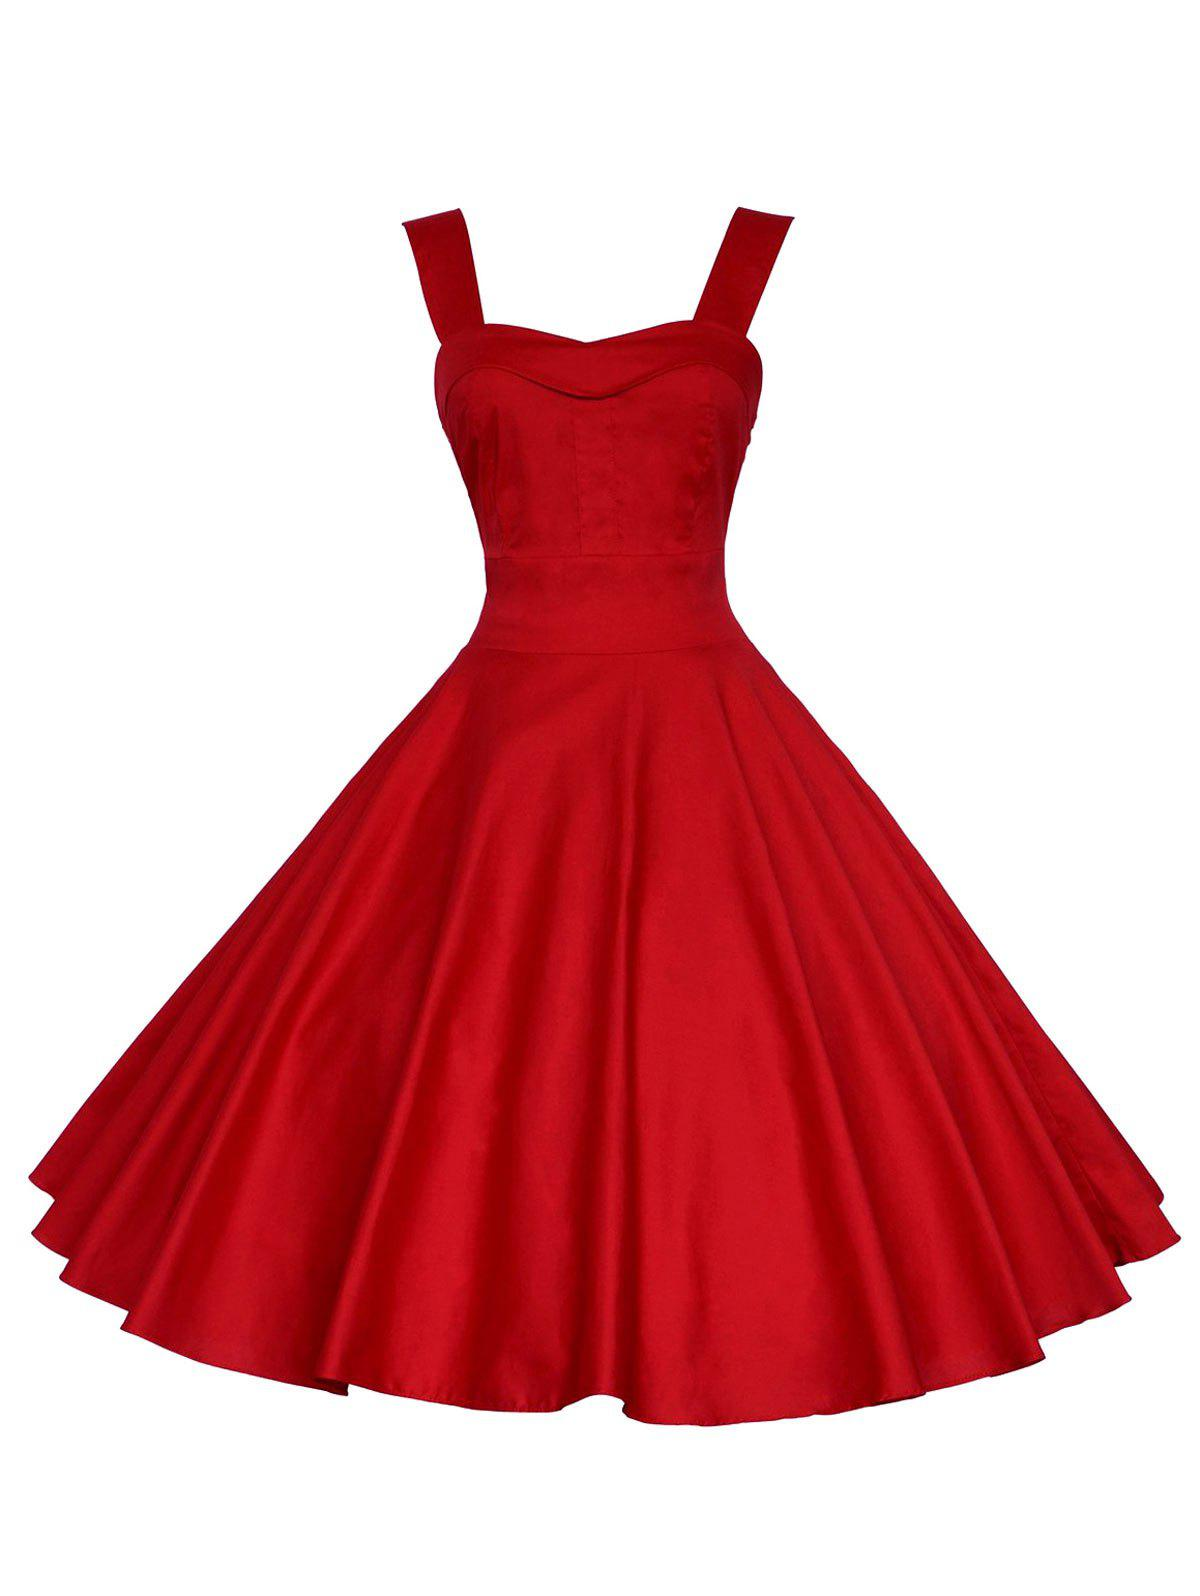 Backless Mini Party Vintage Cocktail Swing Skater DressWOMEN<br><br>Size: S; Color: RED; Style: Vintage; Material: Polyester; Silhouette: A-Line; Dresses Length: Mini; Neckline: Sweetheart Neck; Sleeve Length: Sleeveless; Pattern Type: Solid; With Belt: No; Season: Summer; Weight: 0.3500kg; Package Contents: 1 x Dress;